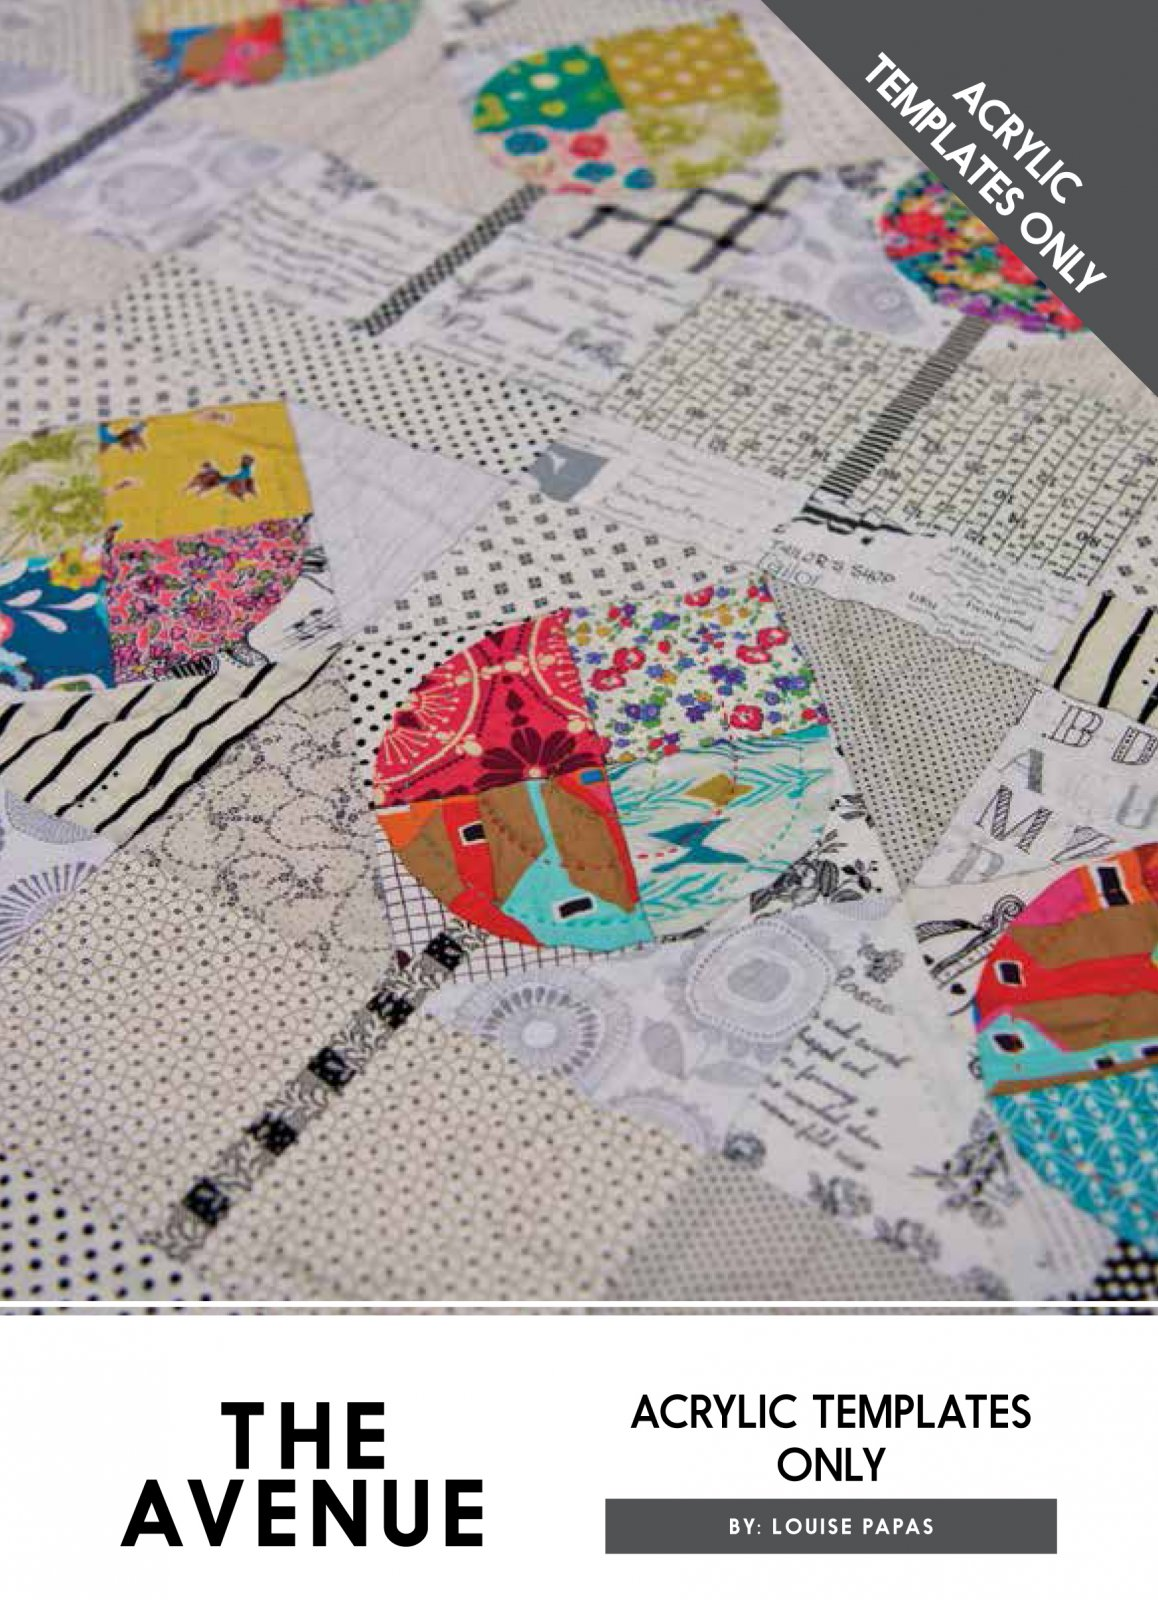 The Avenue Acrylic Template Only by Louise Papas for Jen Kingwell Designs